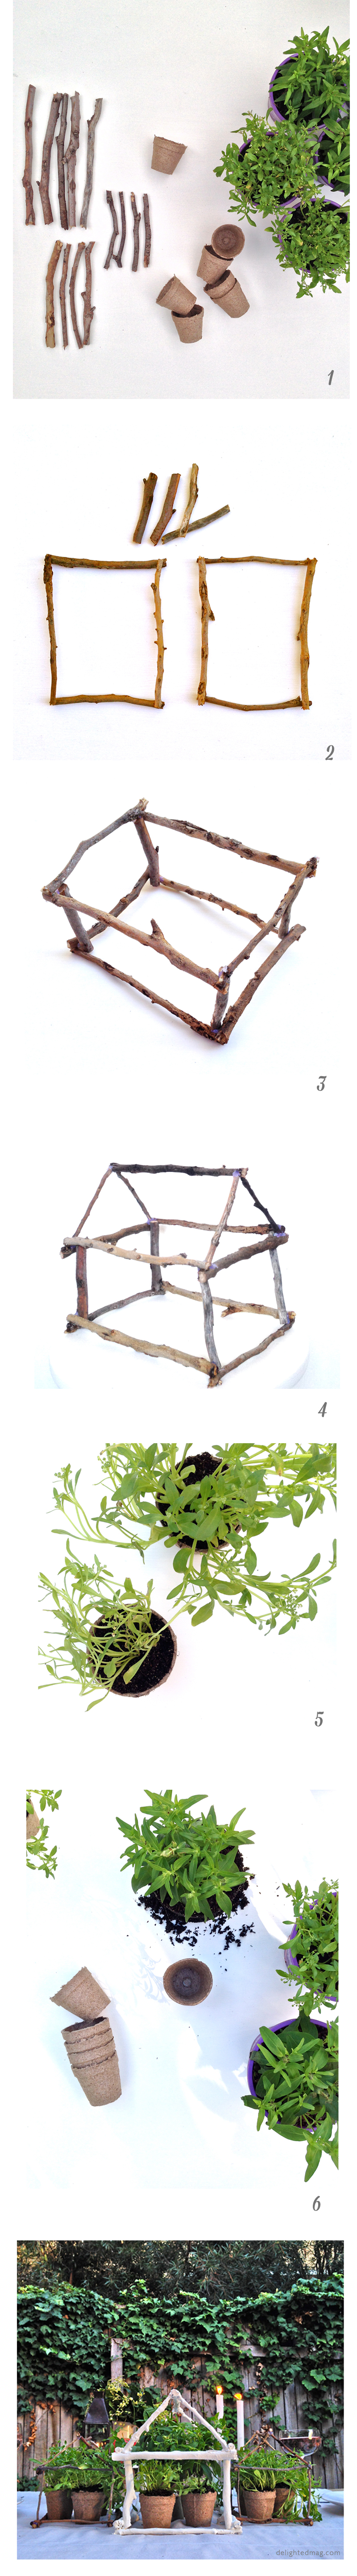 Twig greenhouse centerpiece #outdoor #party via Delighted Magazine